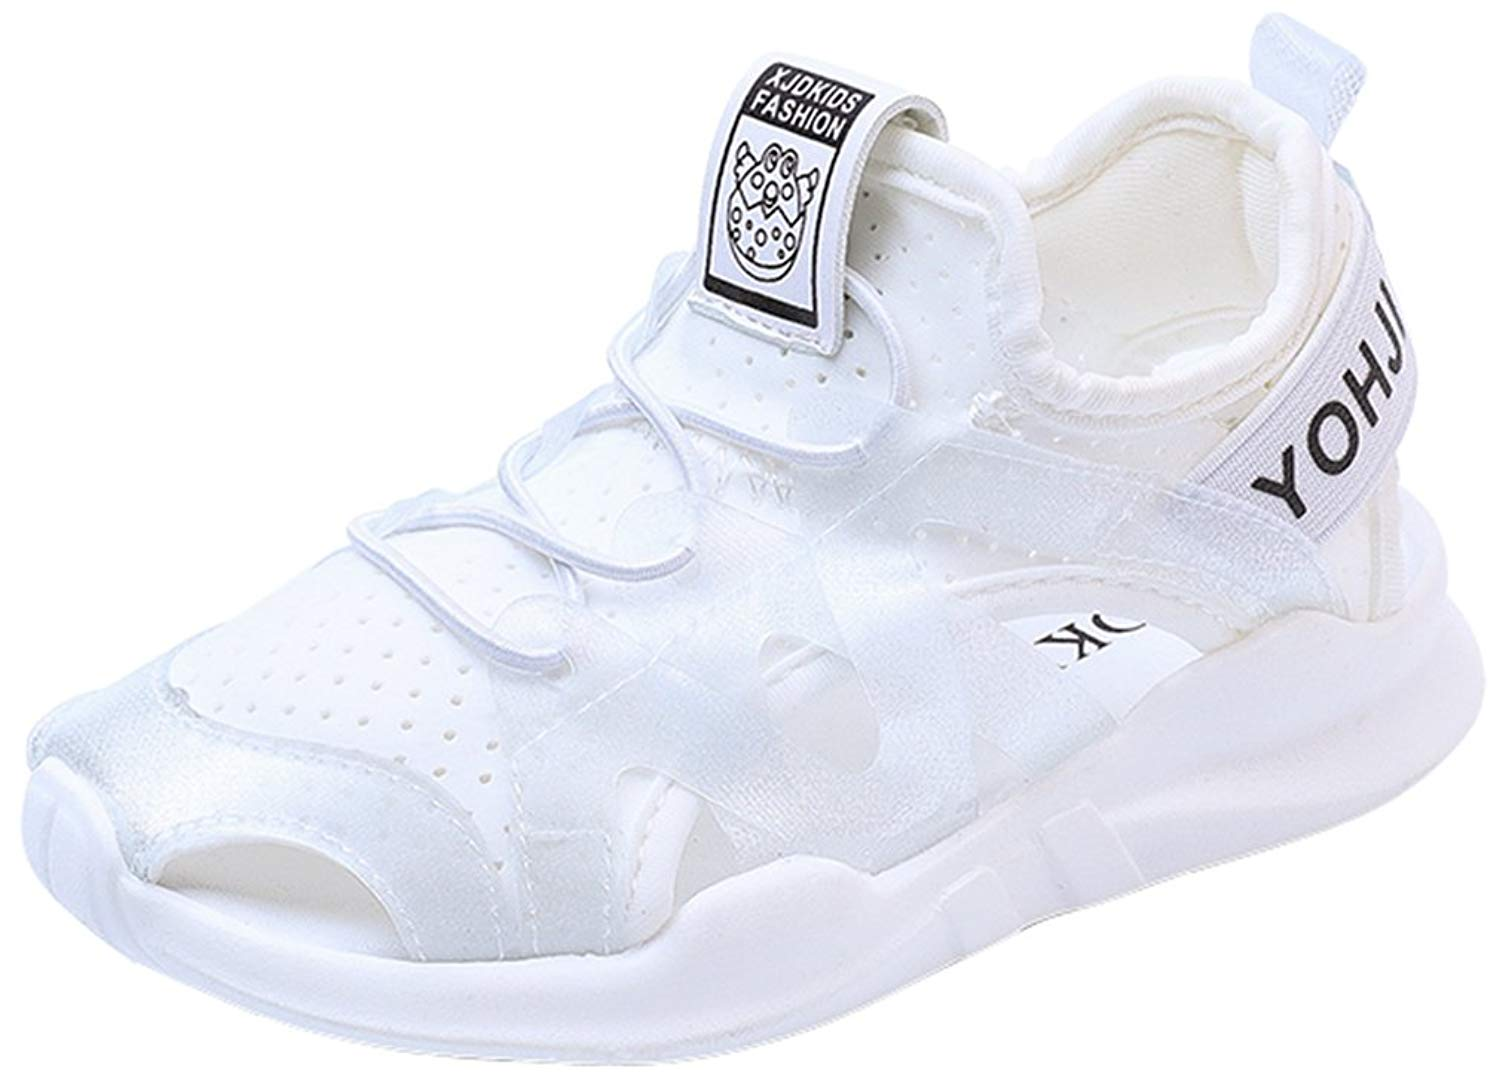 VECJUNIA Boys Girls Sports Shoes Athletic Sneakers Outdoor Running